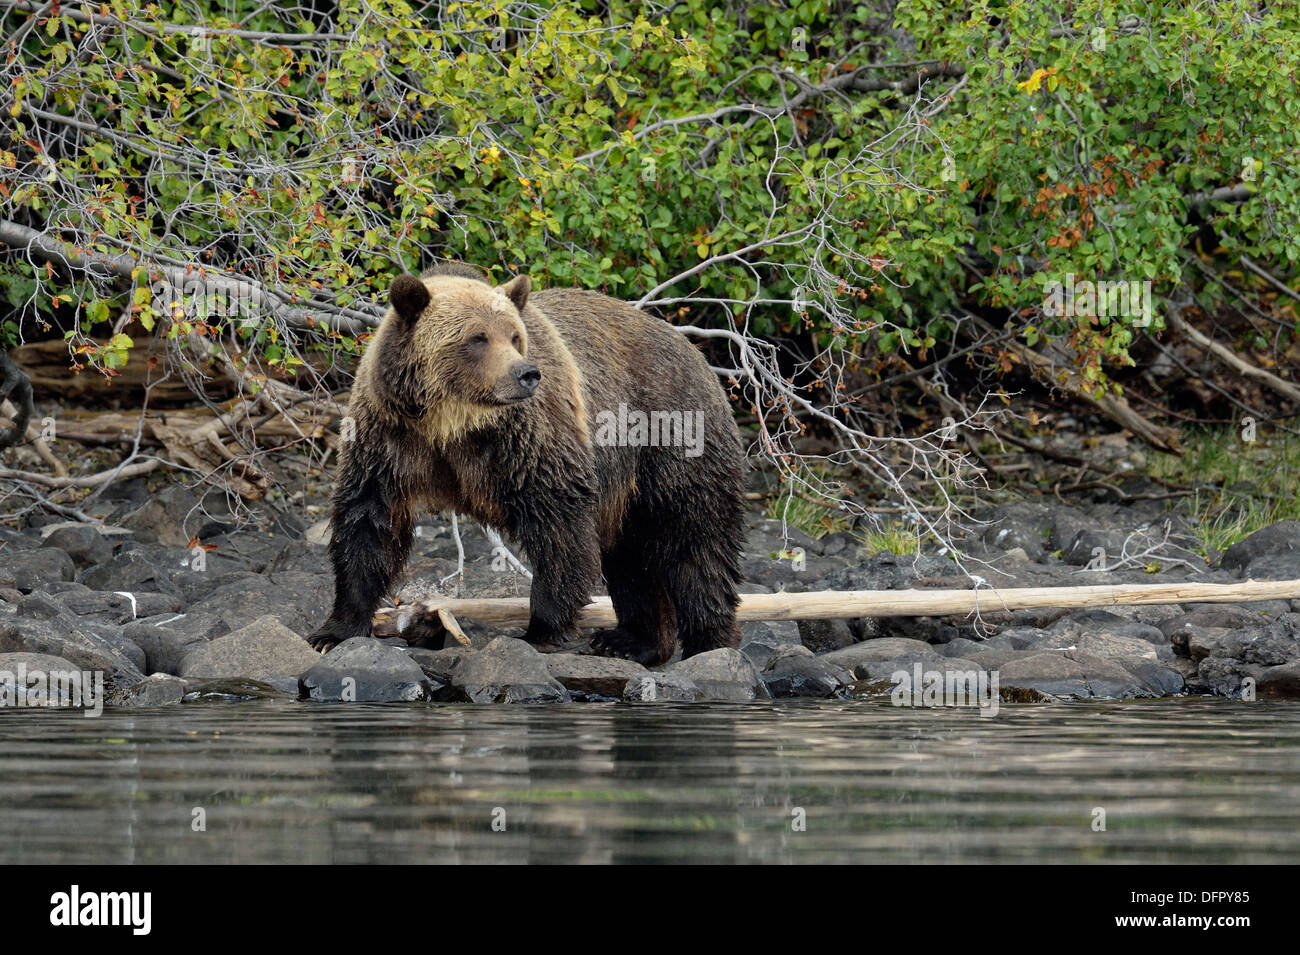 Grizzly bear, Ursus arctos, Hunting spawning salmon along shoreline of a salmon river, Chilcotin Wilderness, BC Interior, Canada - Stock Image